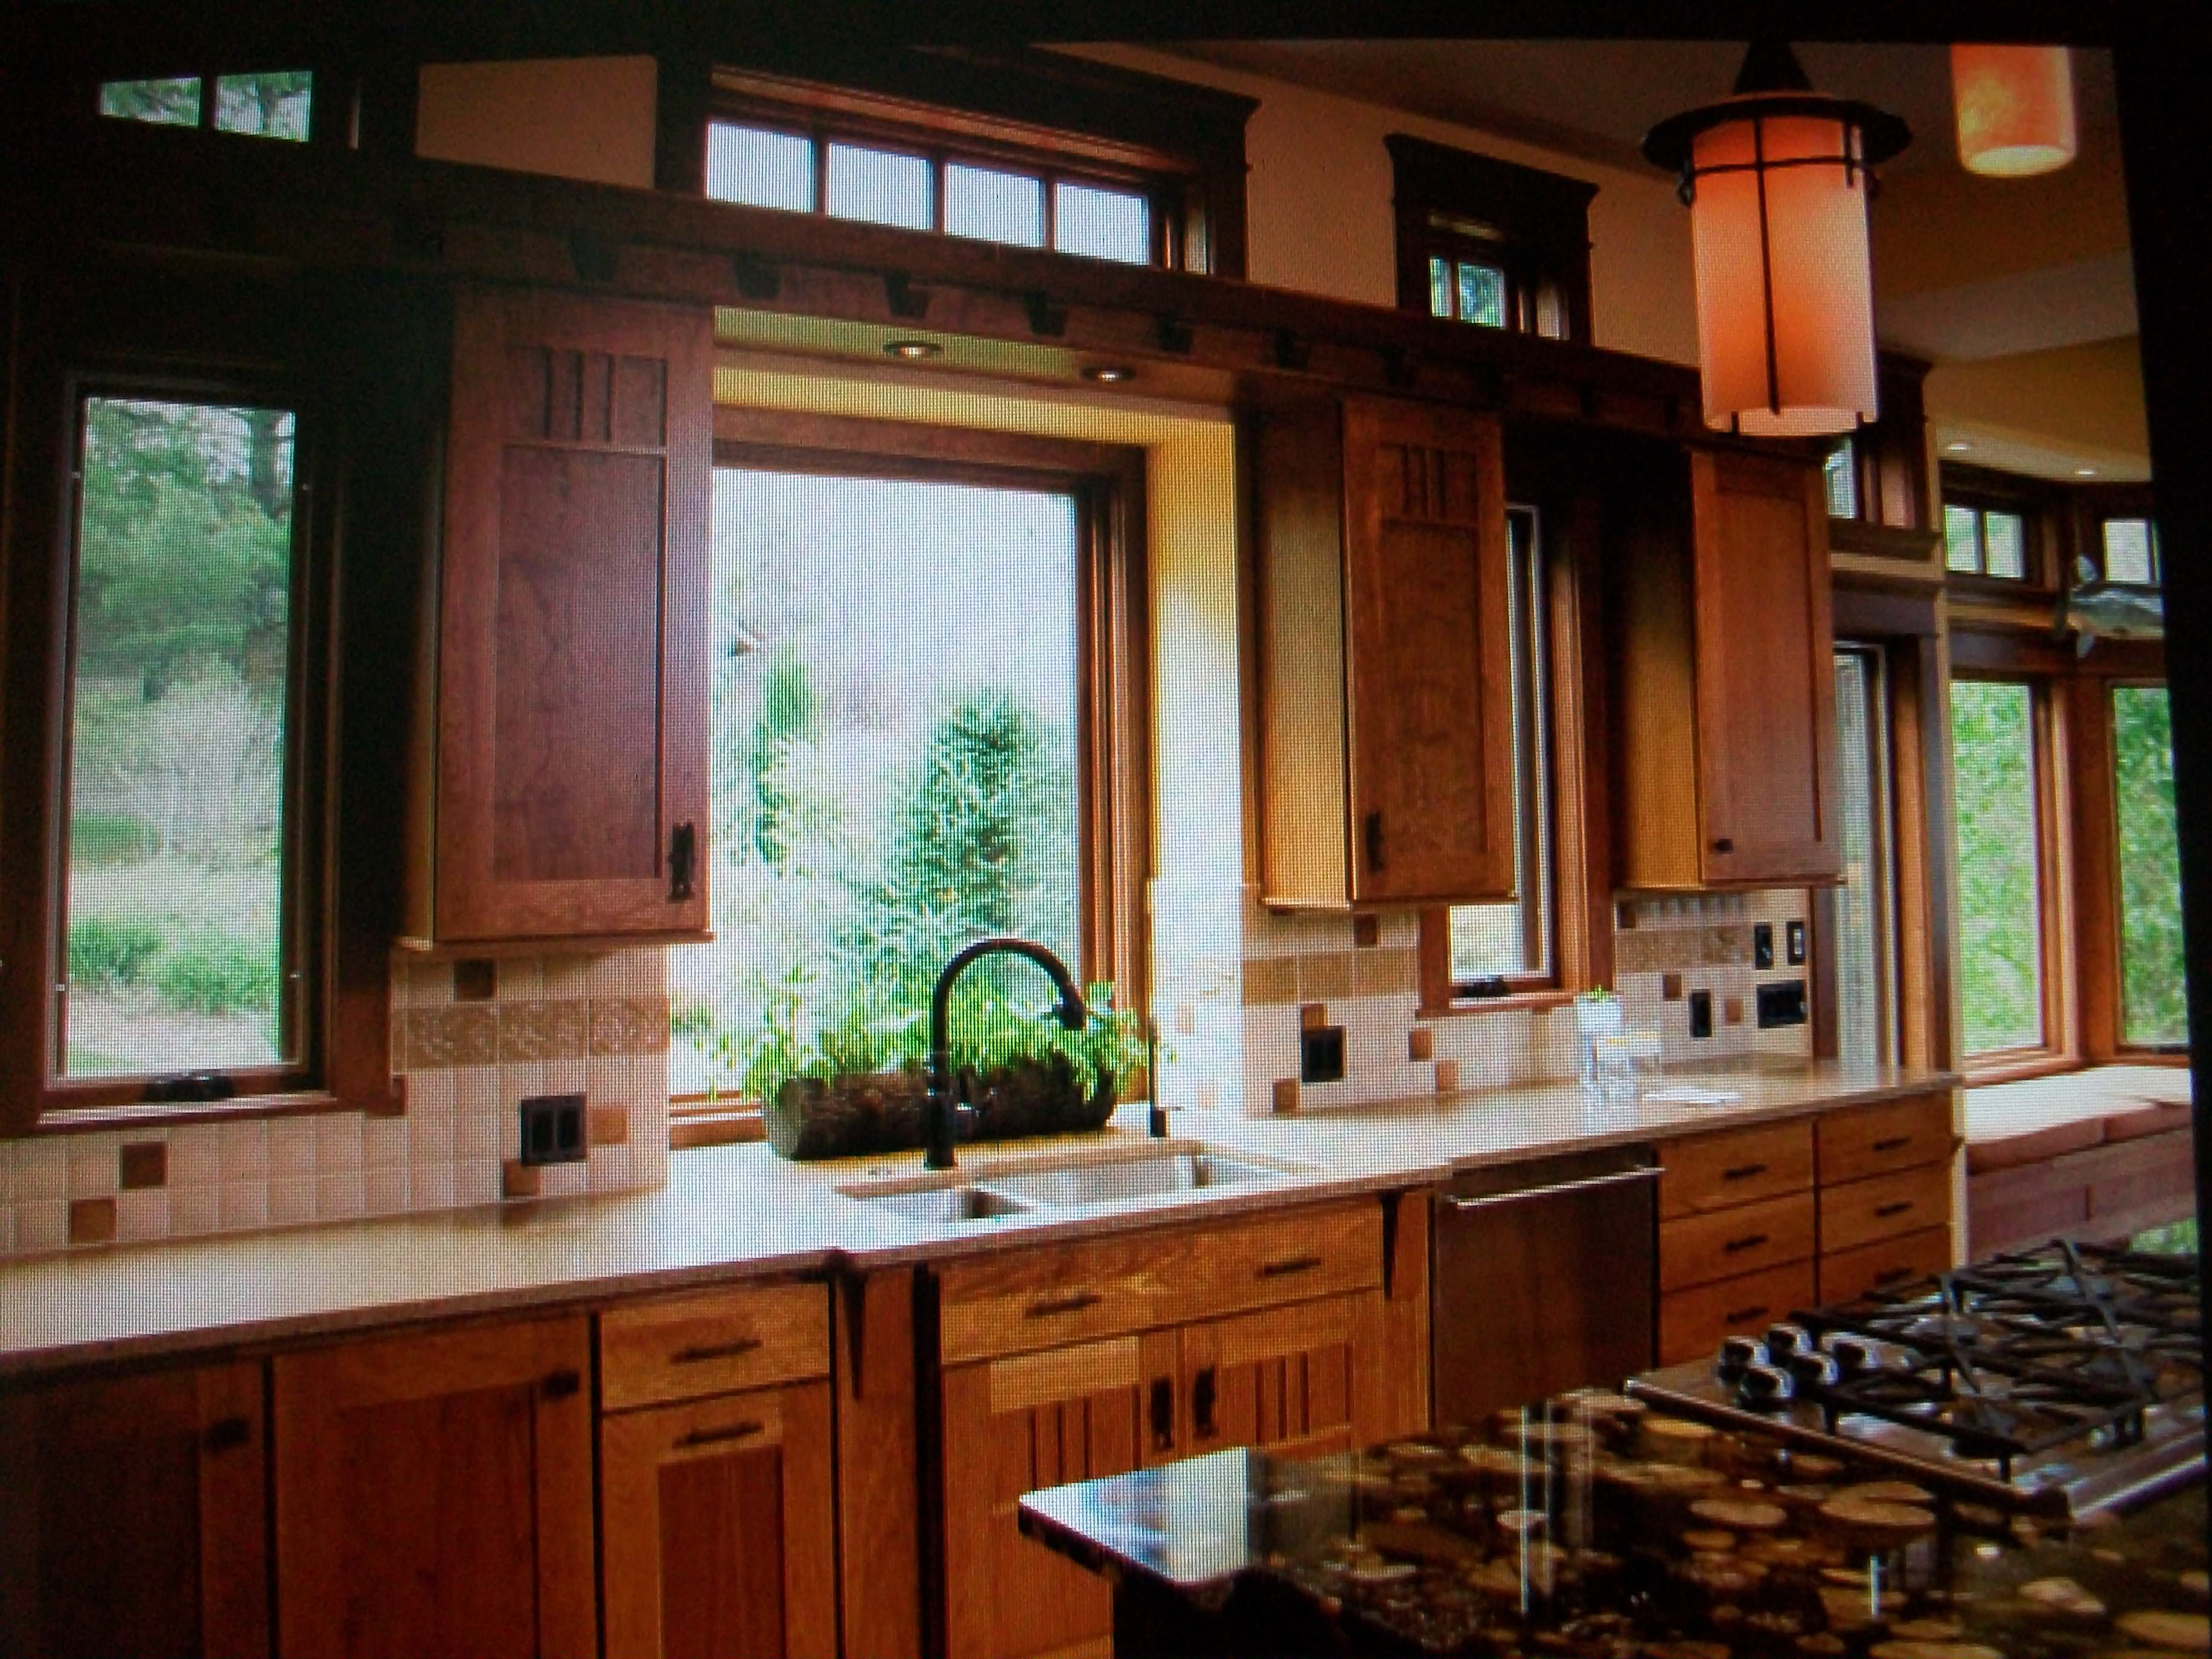 Mission Style Cabinets Kitchen Dark Wood Kitchen Cabinets And Window Views Stained Glass Pendant